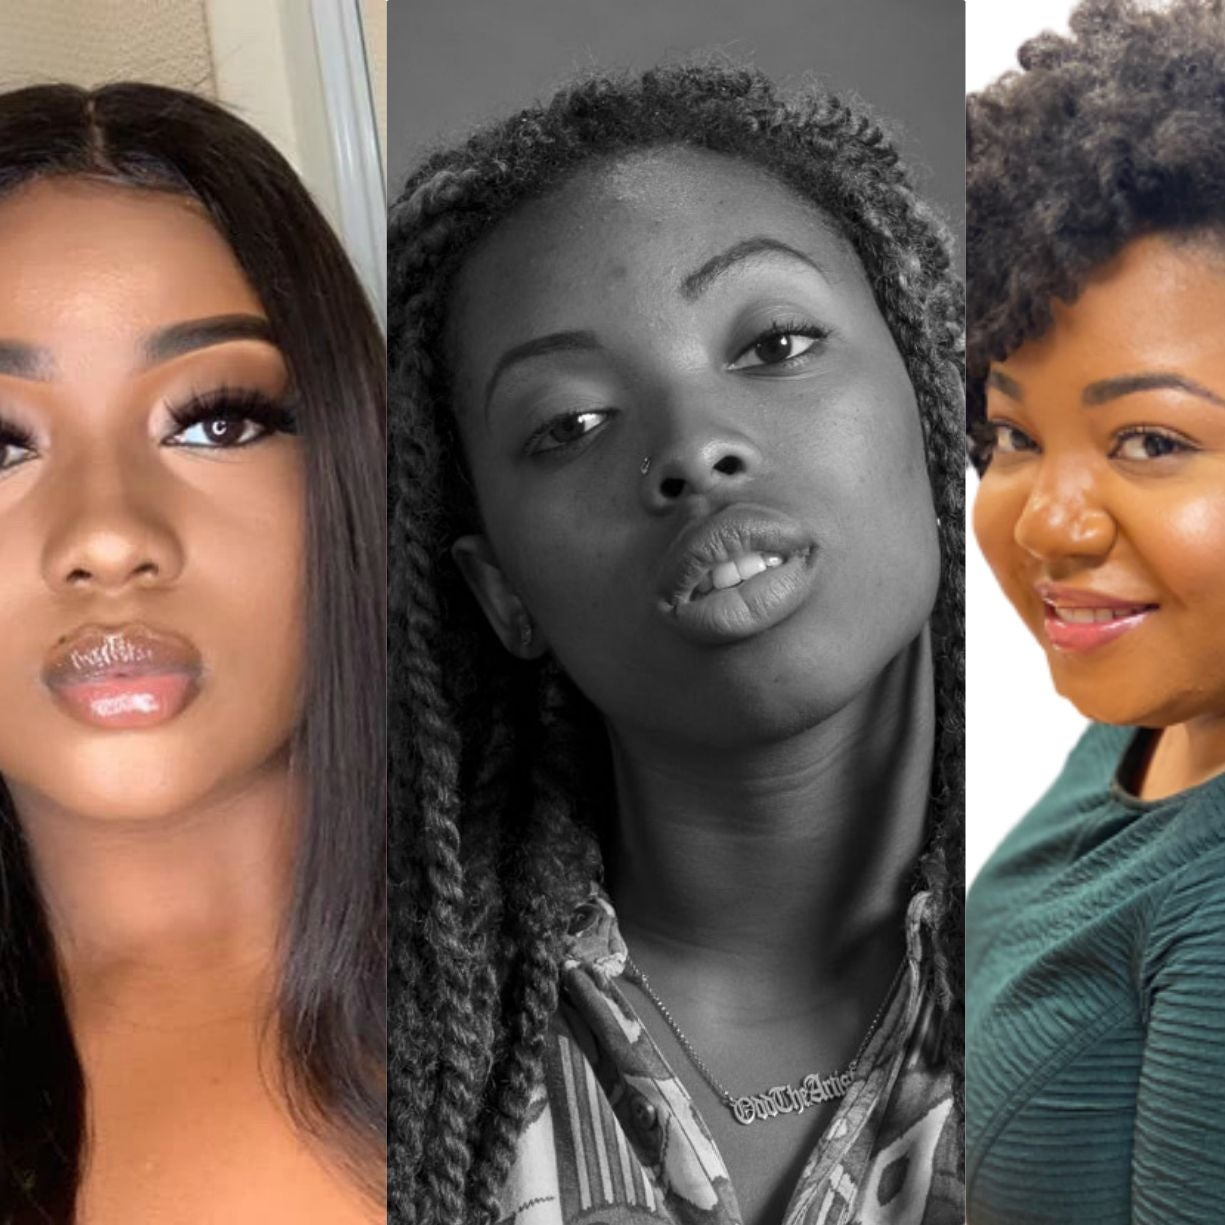 Gen Z Black Women From 5 Different Cities Sound Off On The Changes They Want To See Following #Election2020